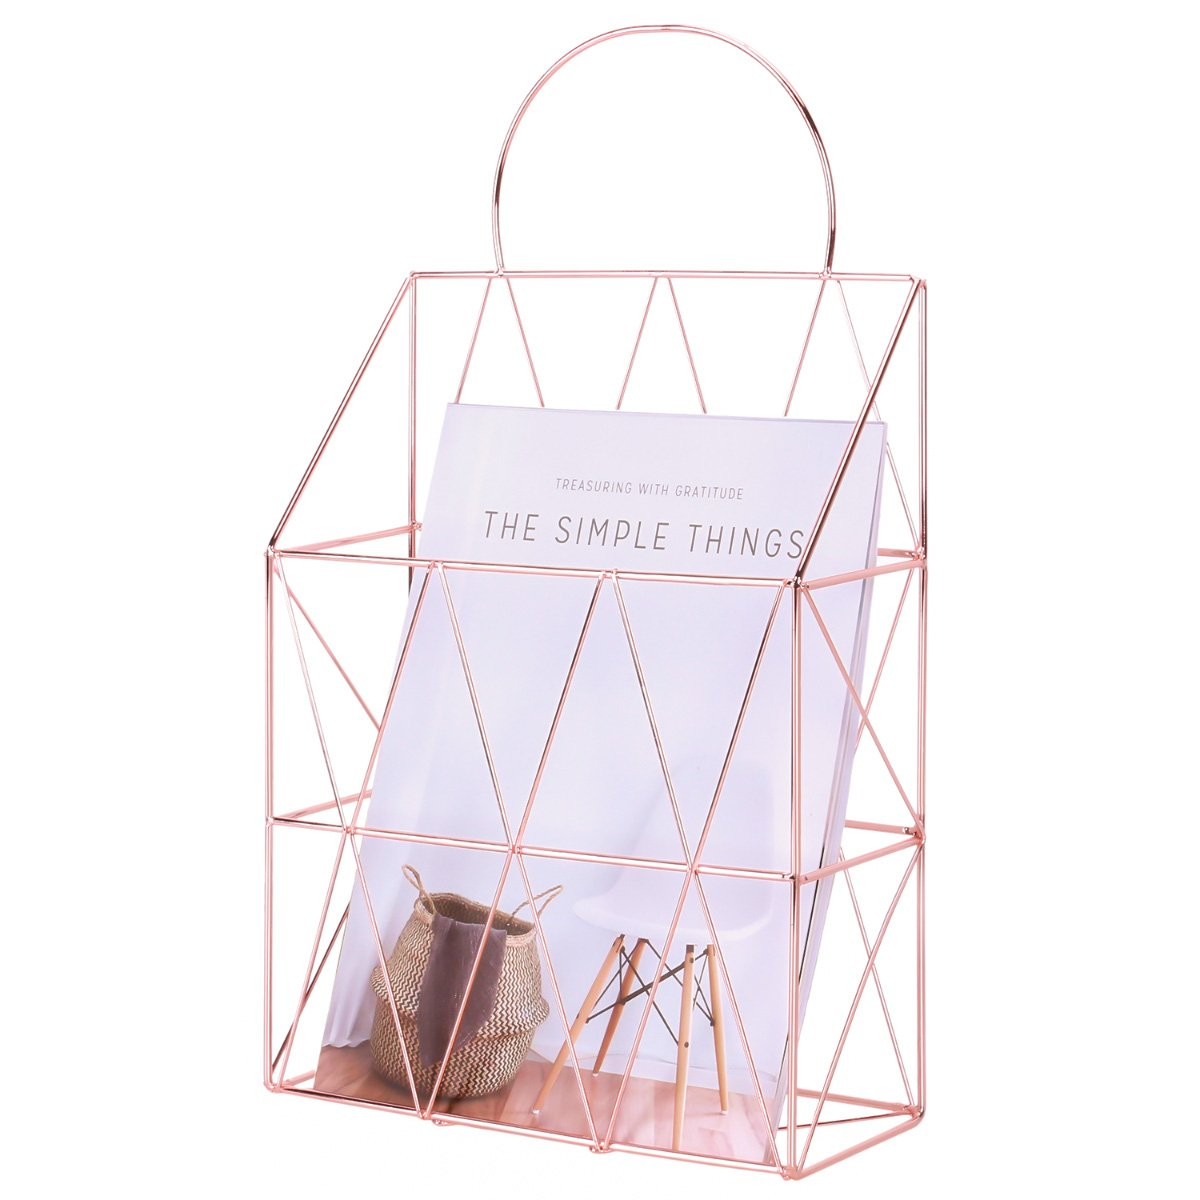 Simmer Stone Wall Mount Magazine Holder, Hanging File Basket Organizer with Handle, Decorative Desk Wire Storage Shelf for Book, Mail, Newspaper, Rose Gold